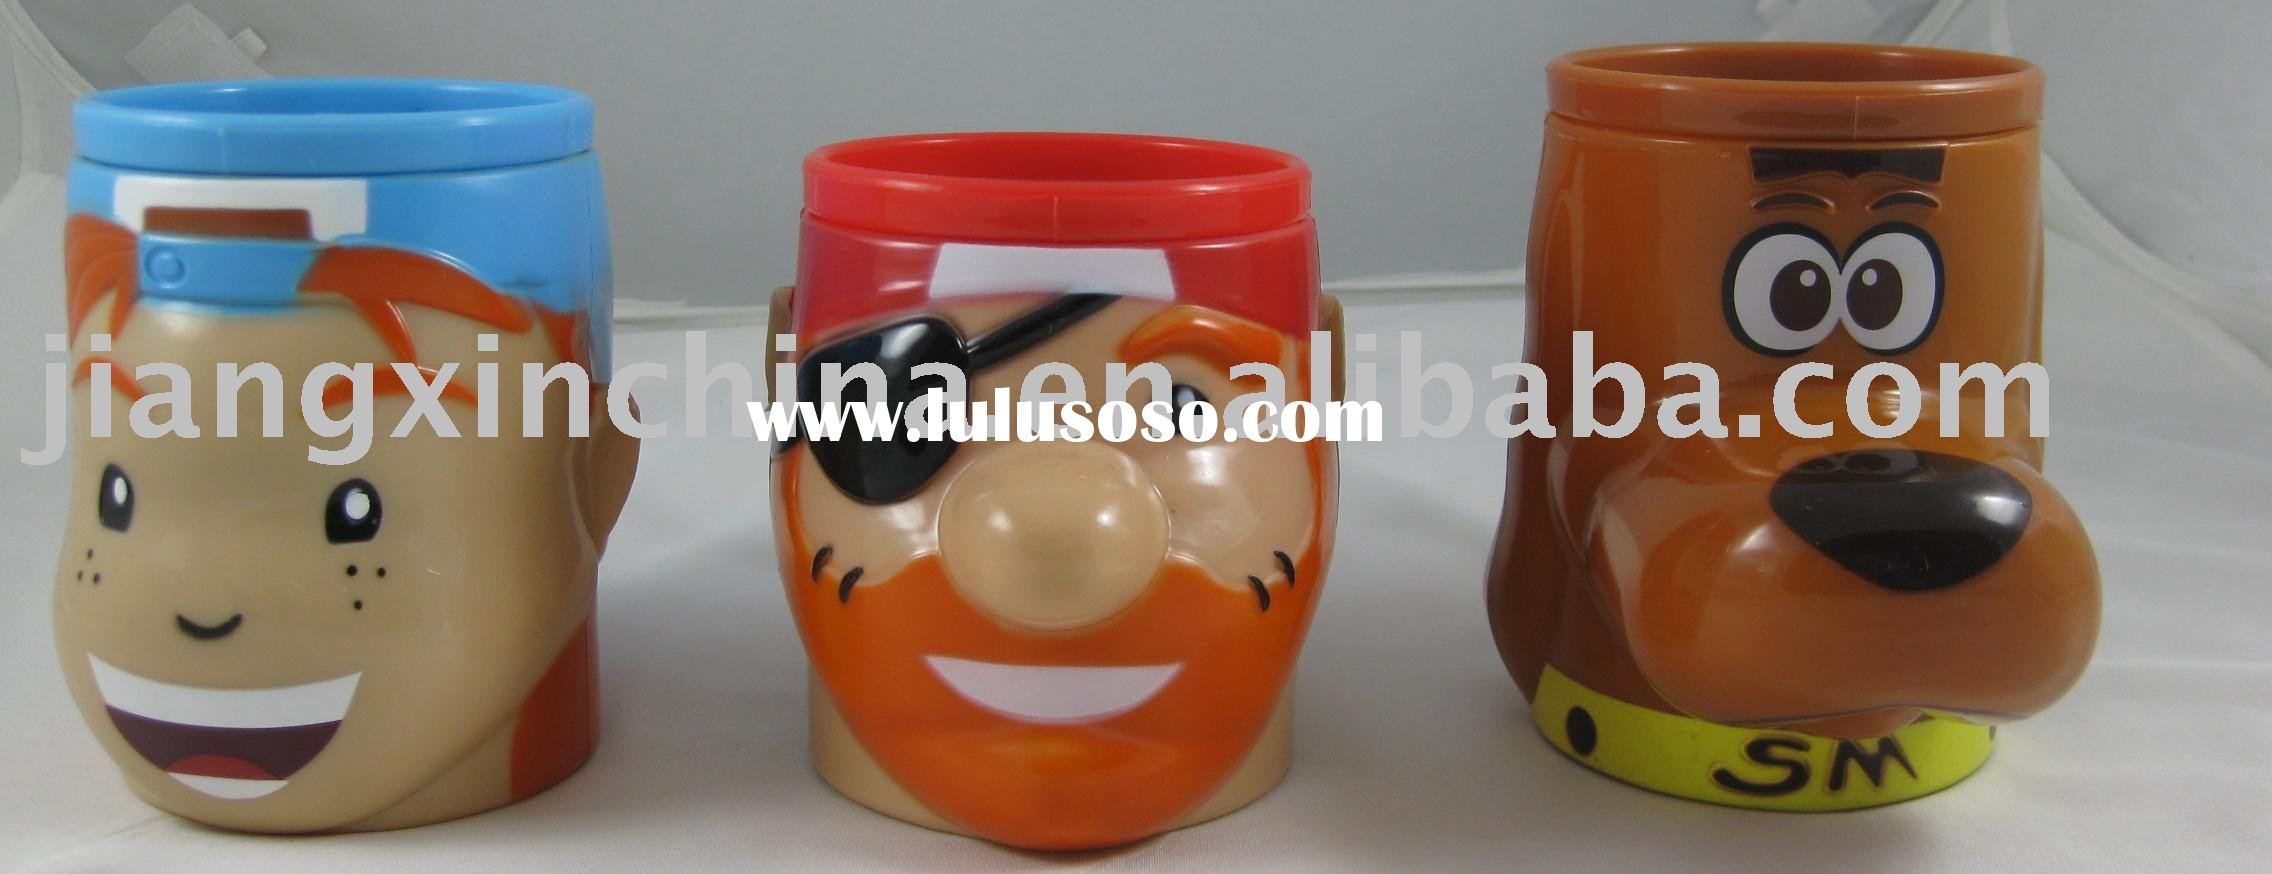 Plastic PP cartoon designed mugs and cups